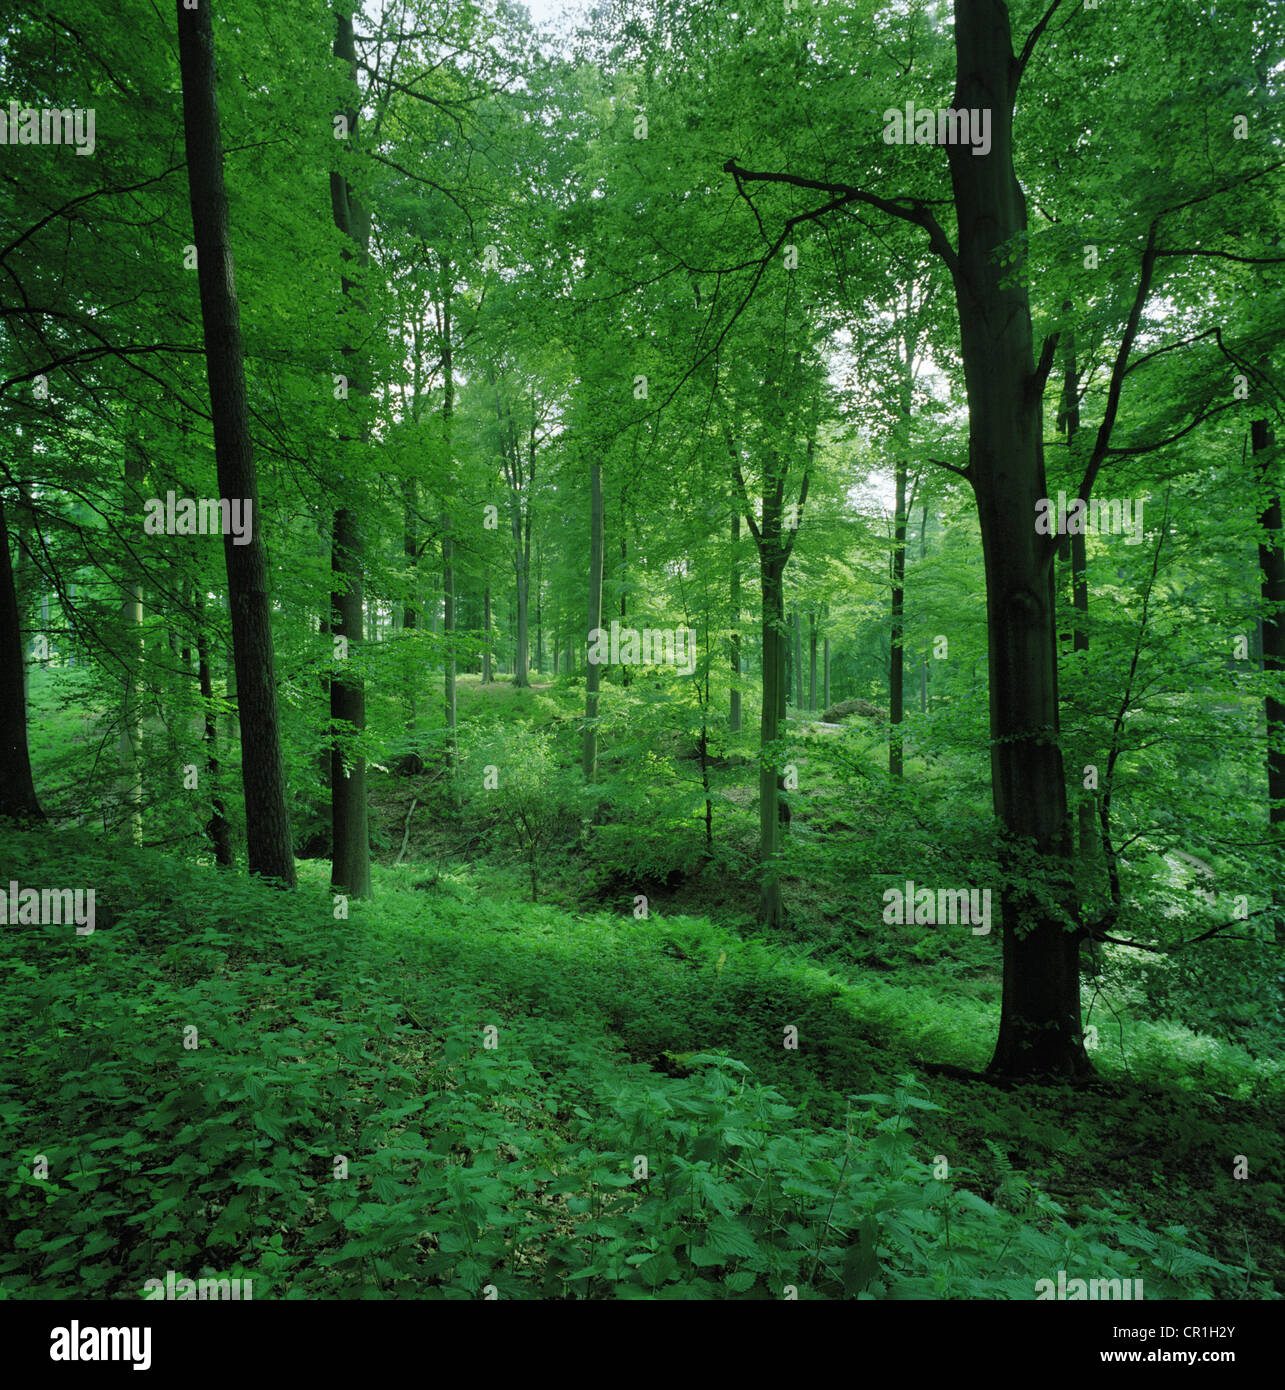 Leafy undergrowth in forest - Stock Image